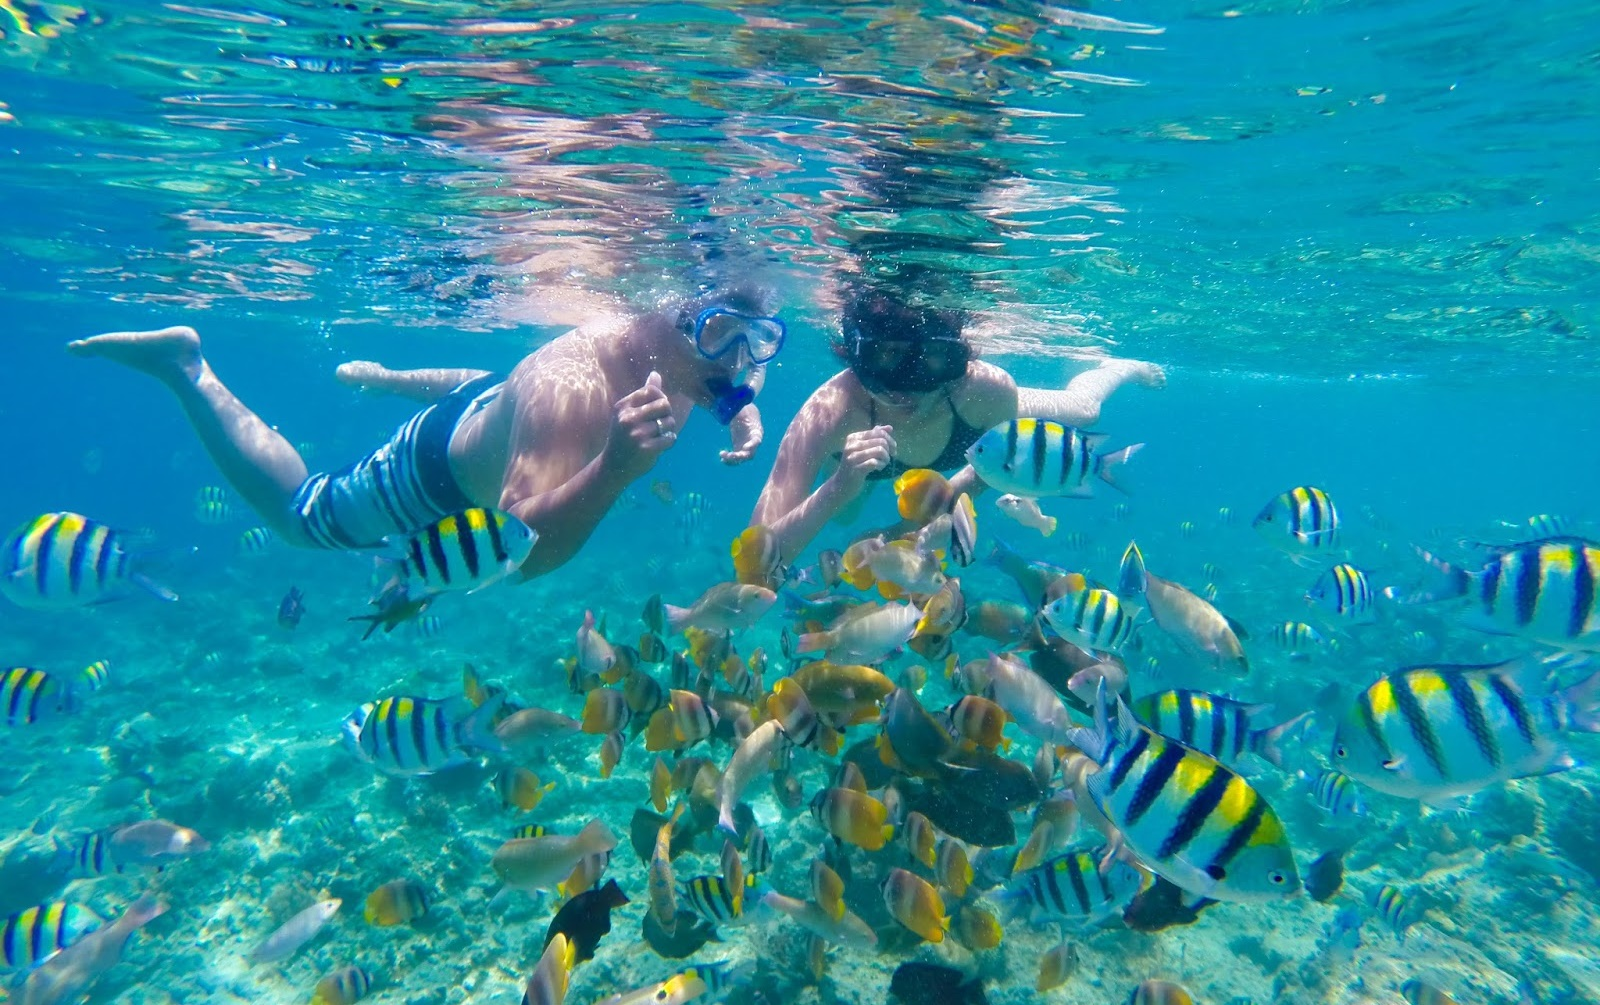 The snorkeling spot on Gili Nanggu is on the eastern part of the island